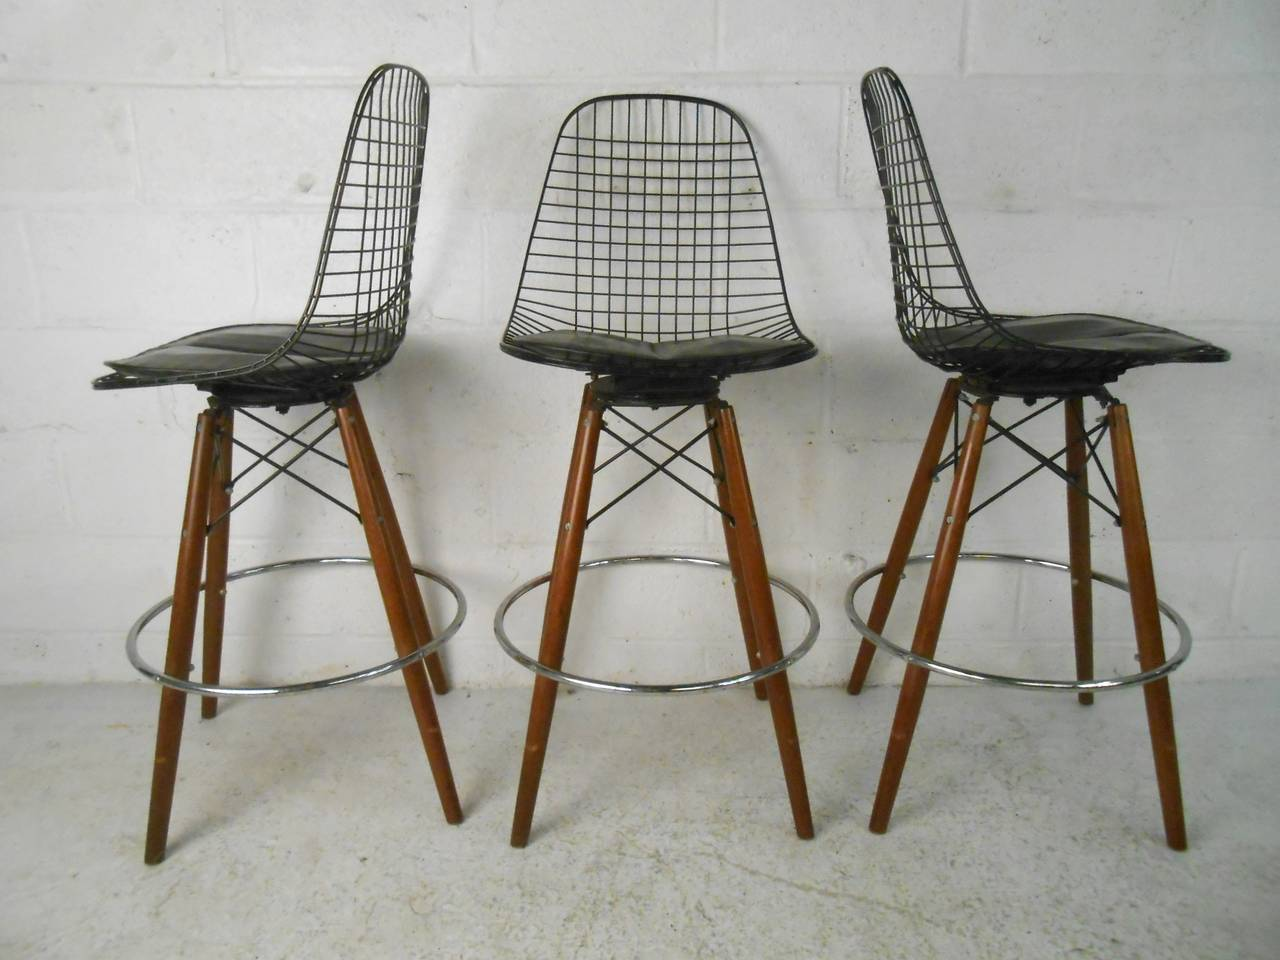 Set of Four Mid-Century Modern Barstools In the Style of Harry Bertoia for Knol : mid century modern bar stools - islam-shia.org